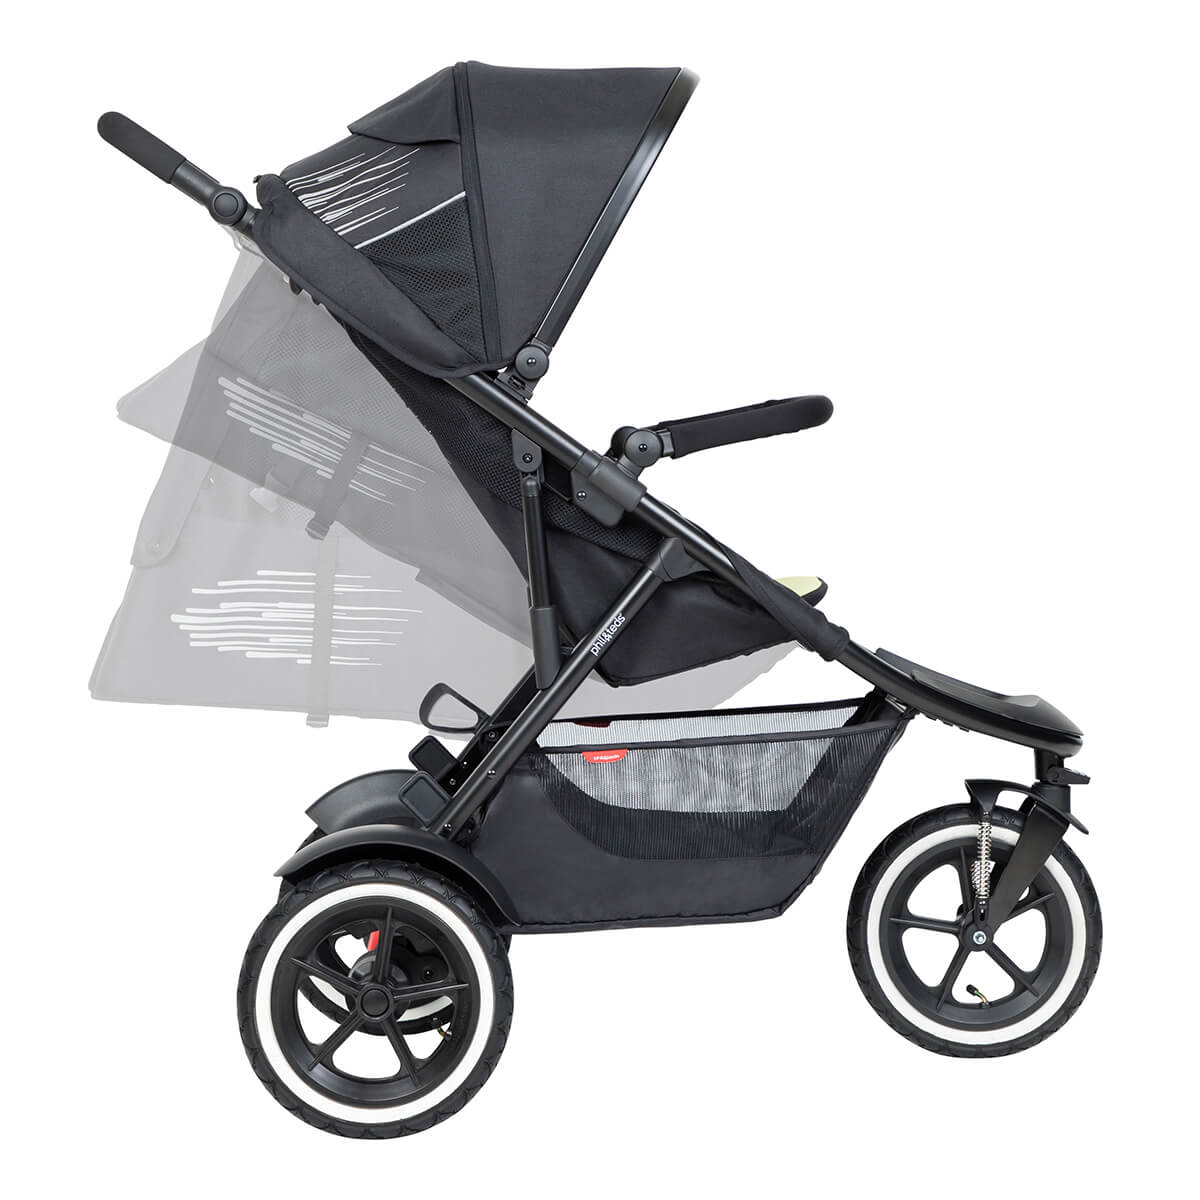 https://cdn.accentuate.io/4381202088013/19466203824322/philteds-sport-buggy-can-recline-in-multiple-angles-including-full-recline-for-newborn-baby-v1626485341732.jpg?1200x1200